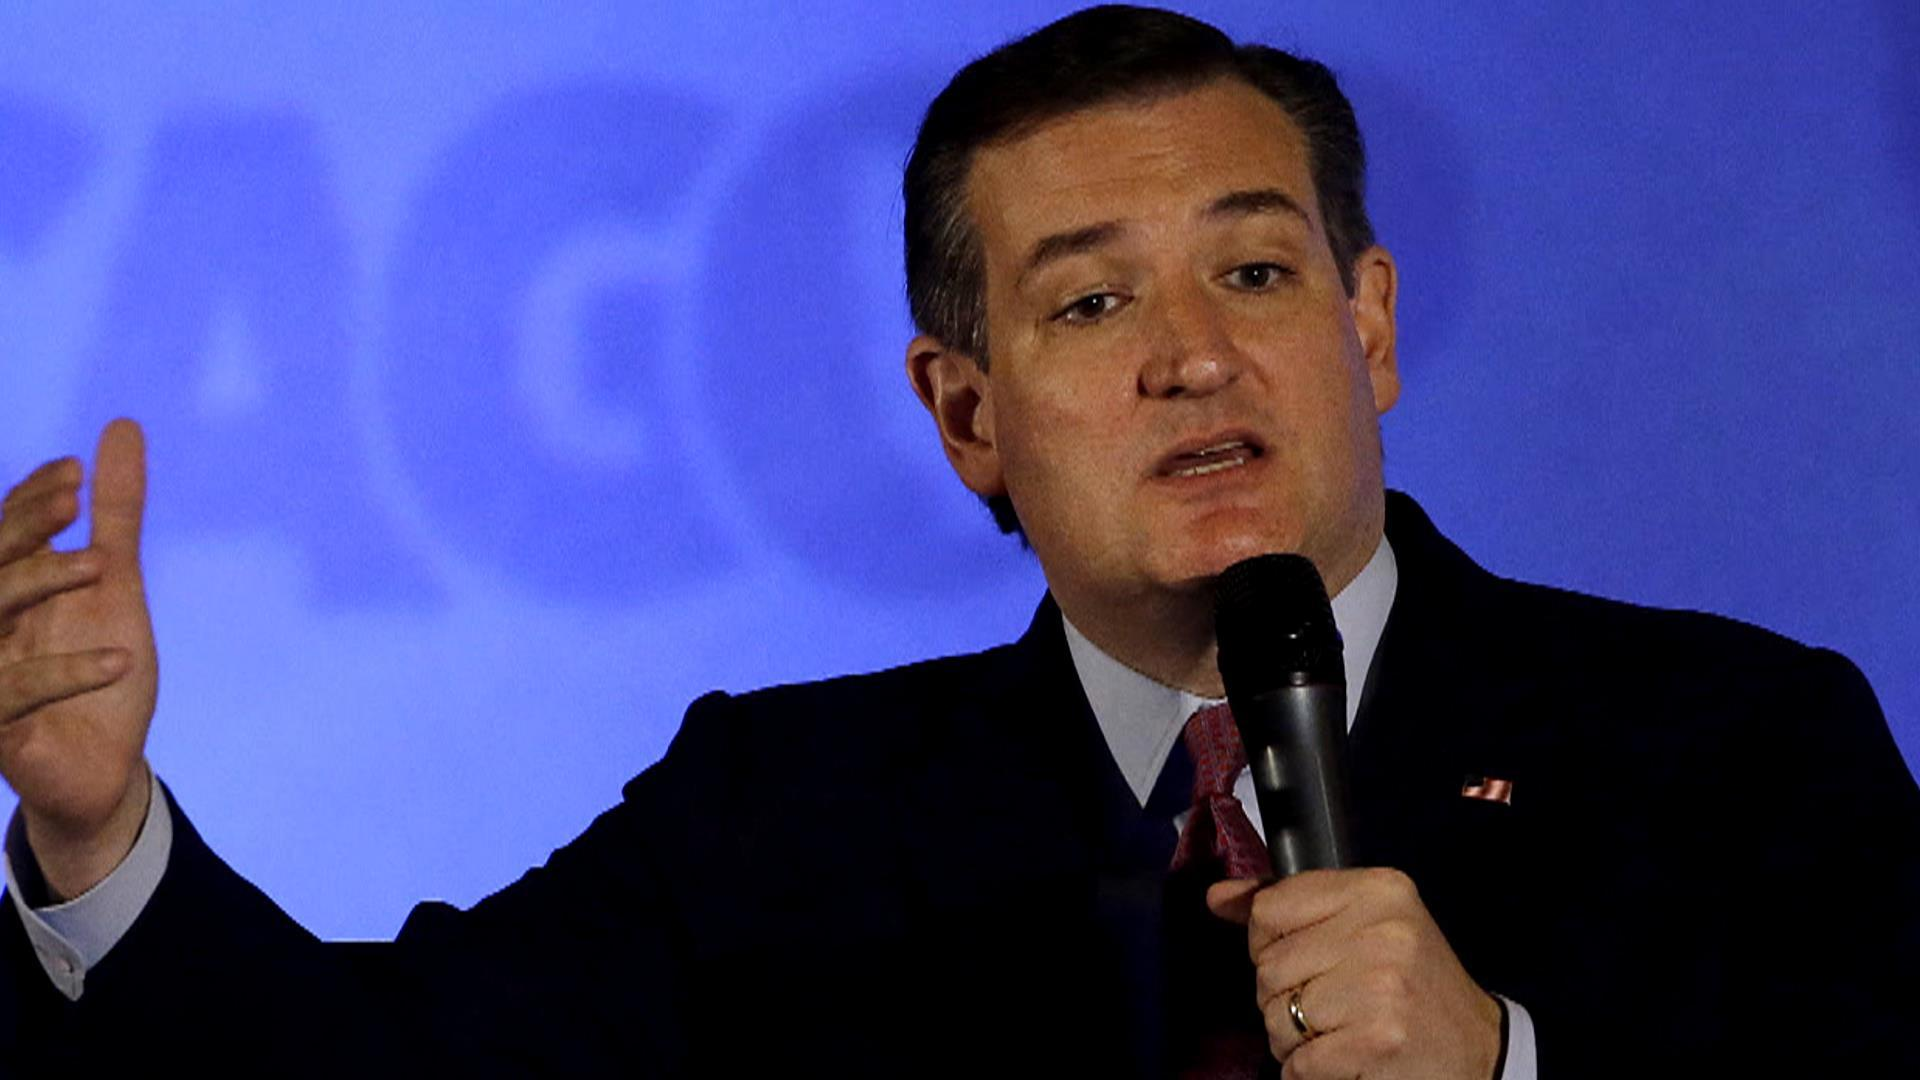 Analyst Nicolle Wallace: Ted Cruz has made some 'really damaging missteps'